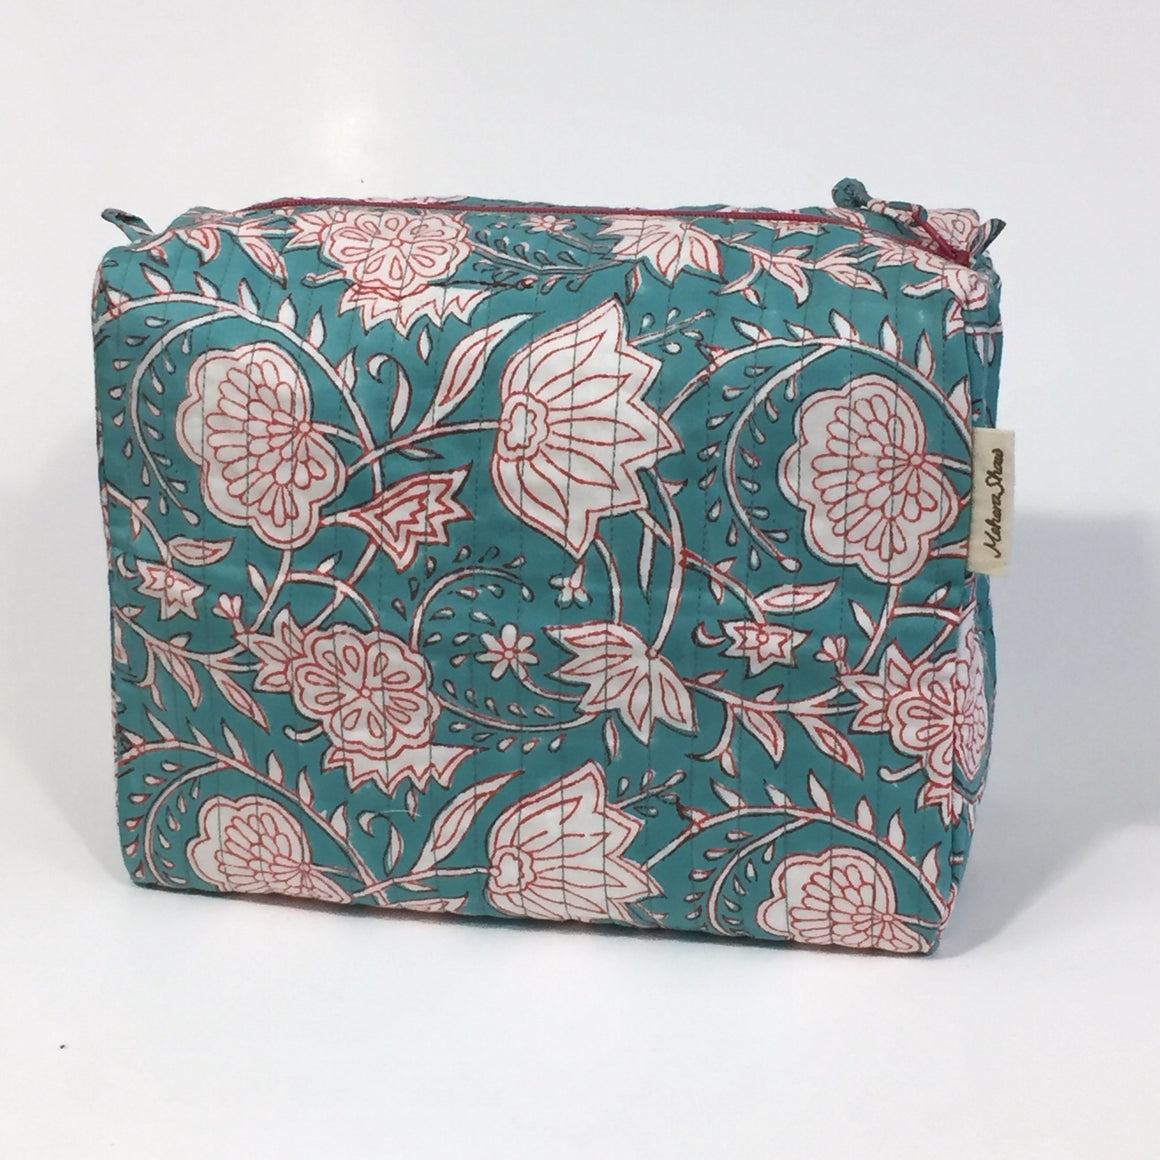 Travel Bag in Maui Turquoise Hand Block Print